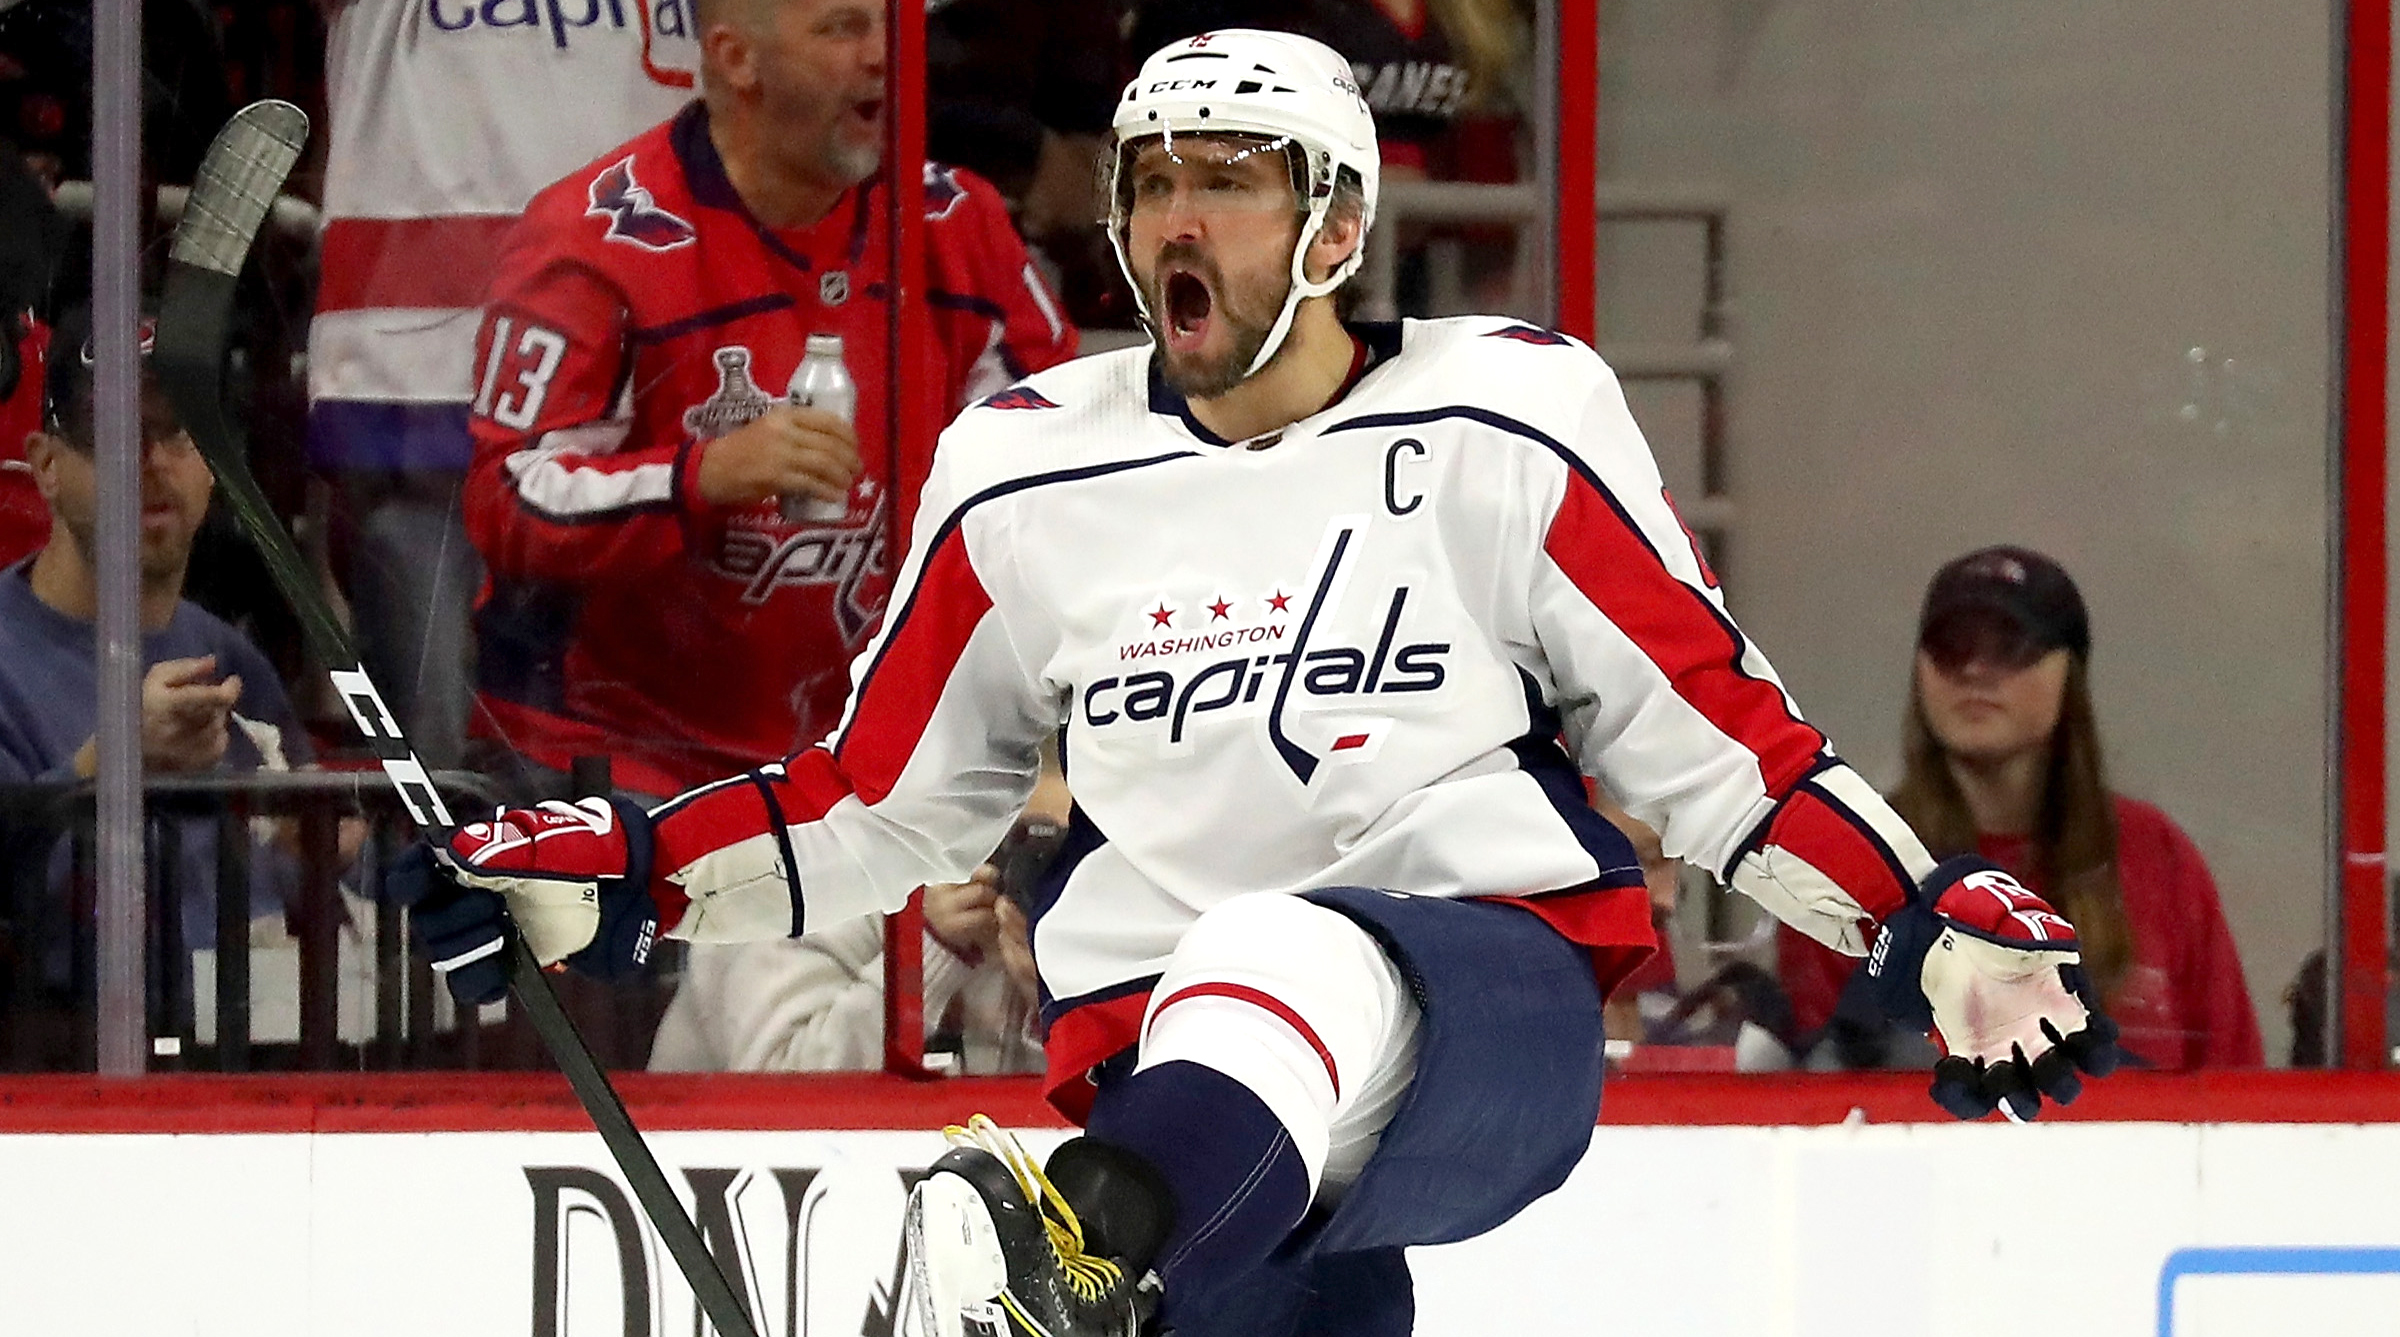 Ovechkin-hat-trick-capitals